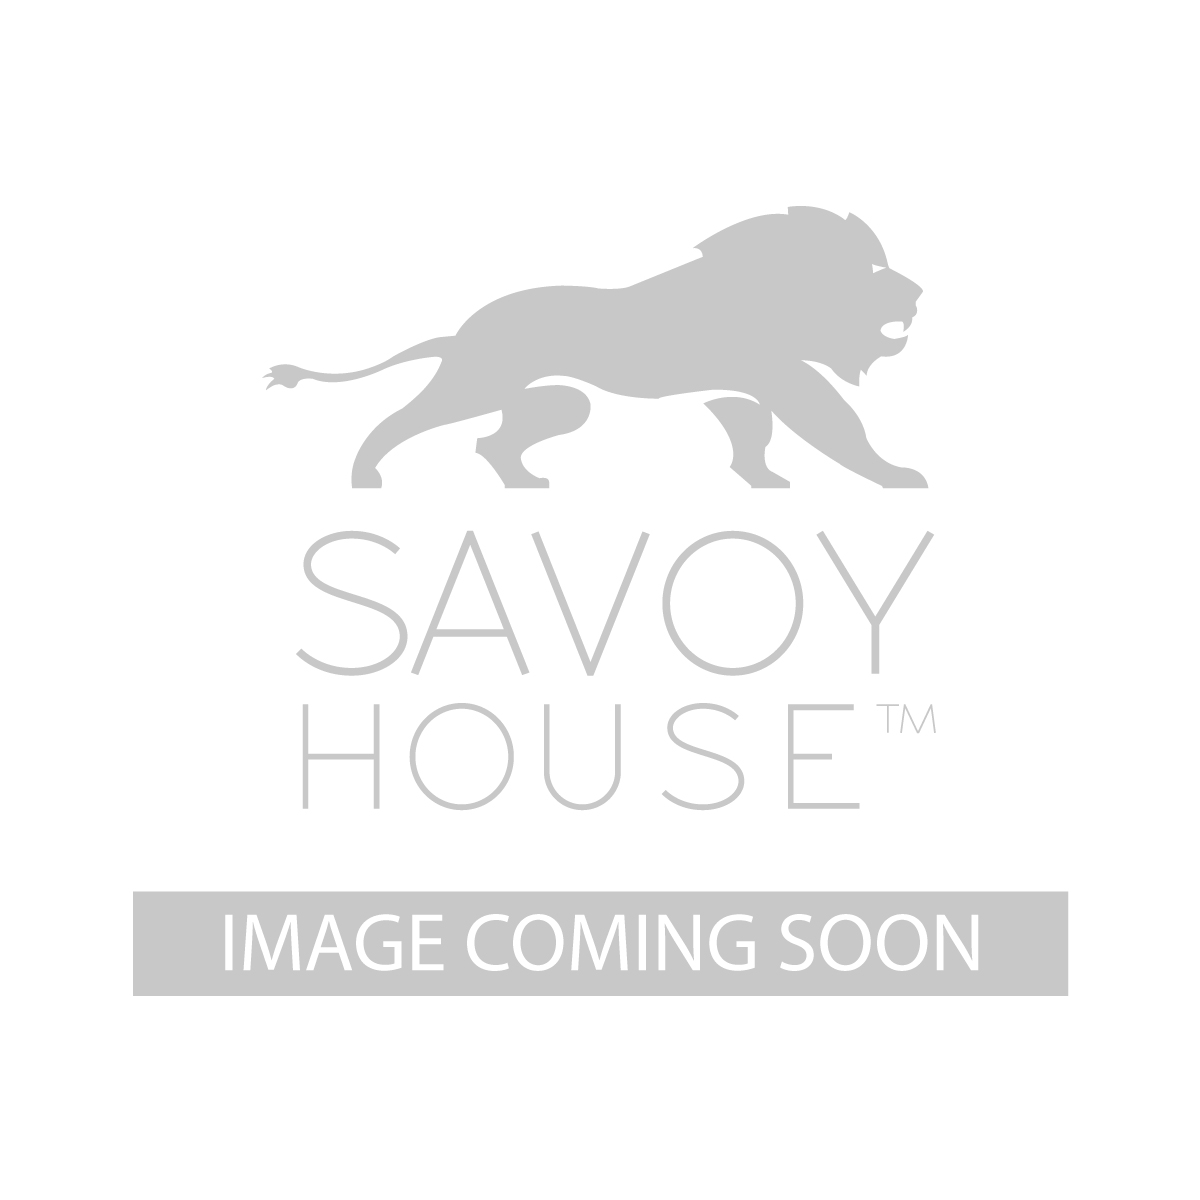 60 5025 3KO SN La Salle 60 inch 3 Blade Ceiling Fan by Savoy House